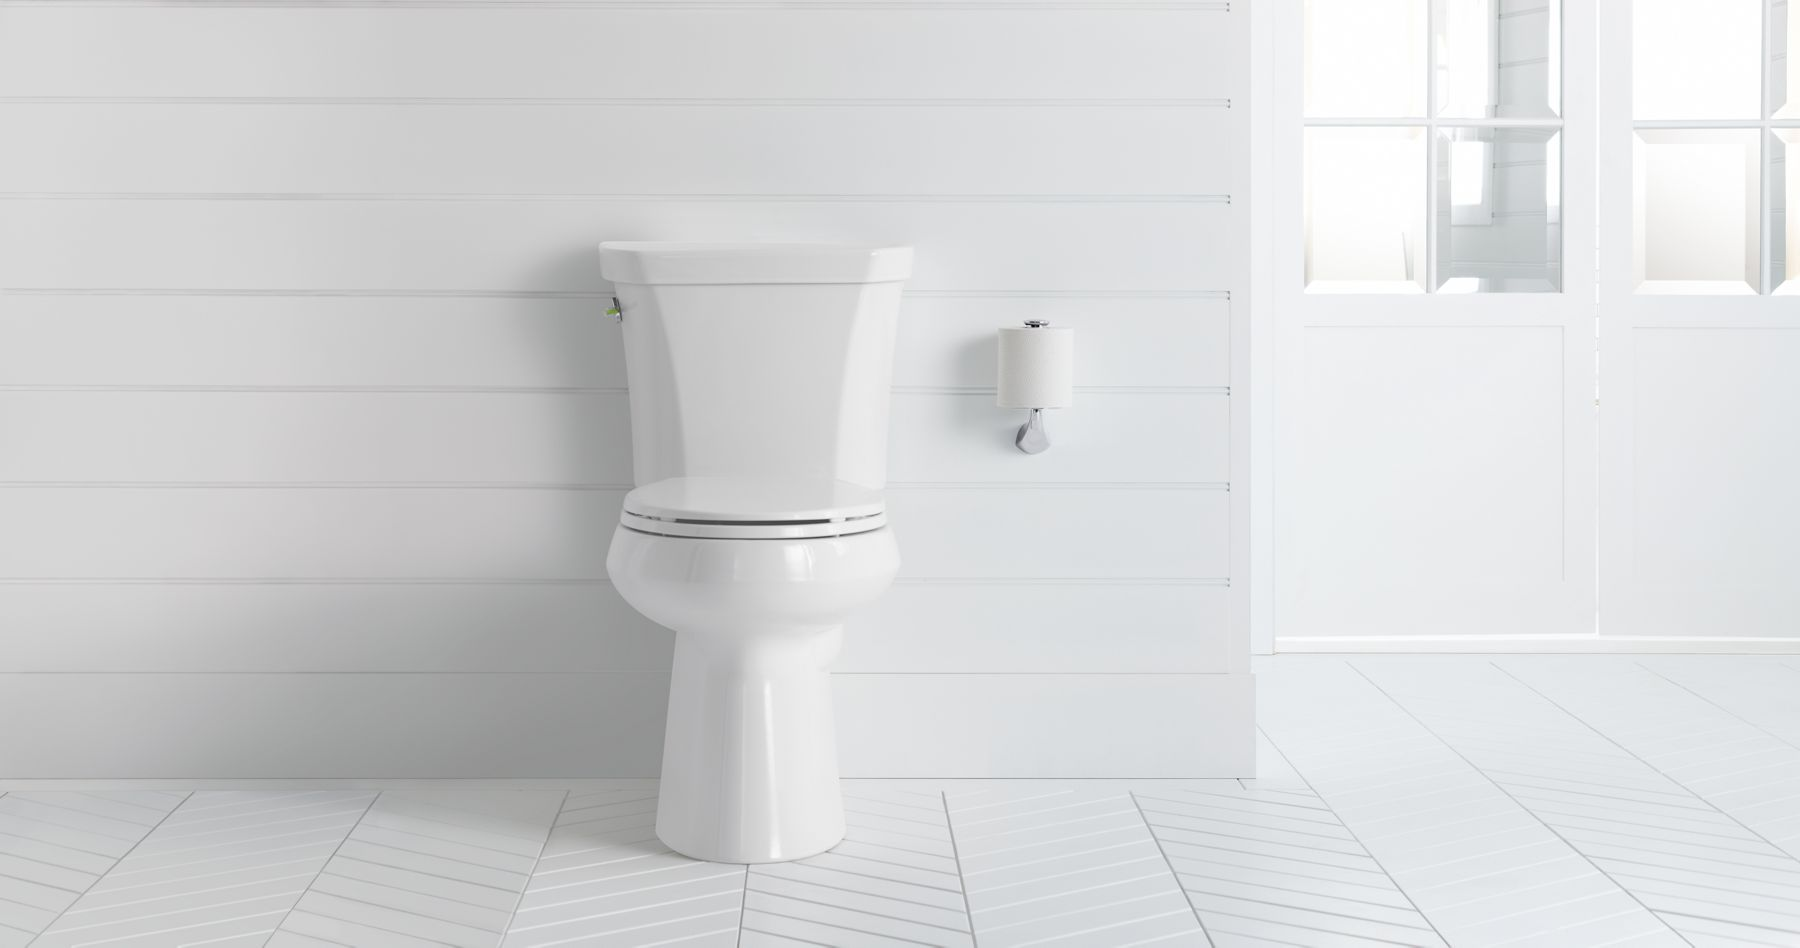 Dual Flush Toilets Are A Powerful Way To Save Water